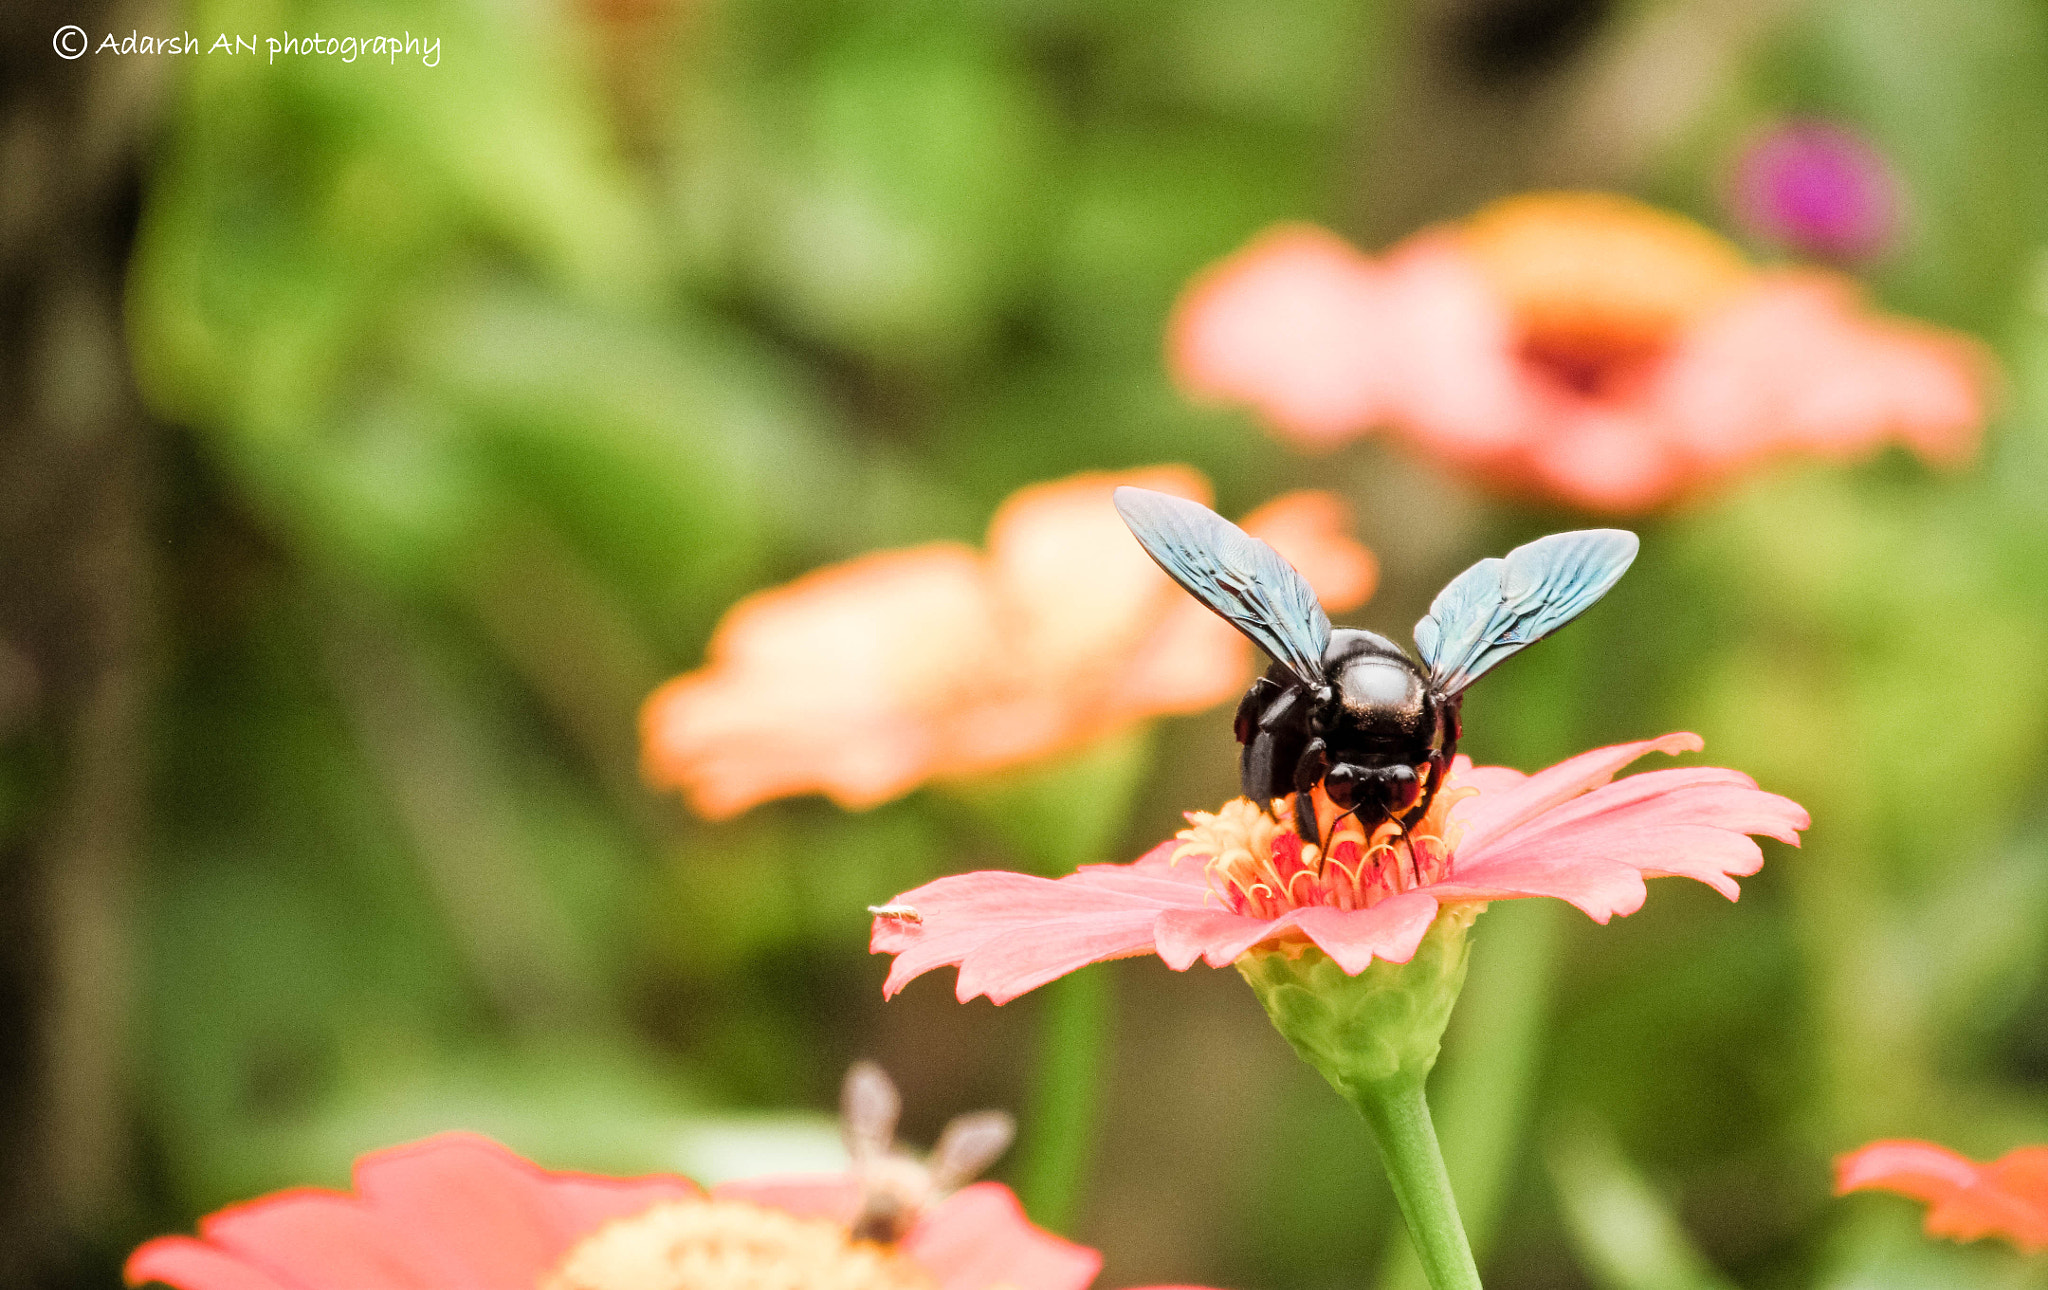 Photograph Beetle by Adarsh An on 500px